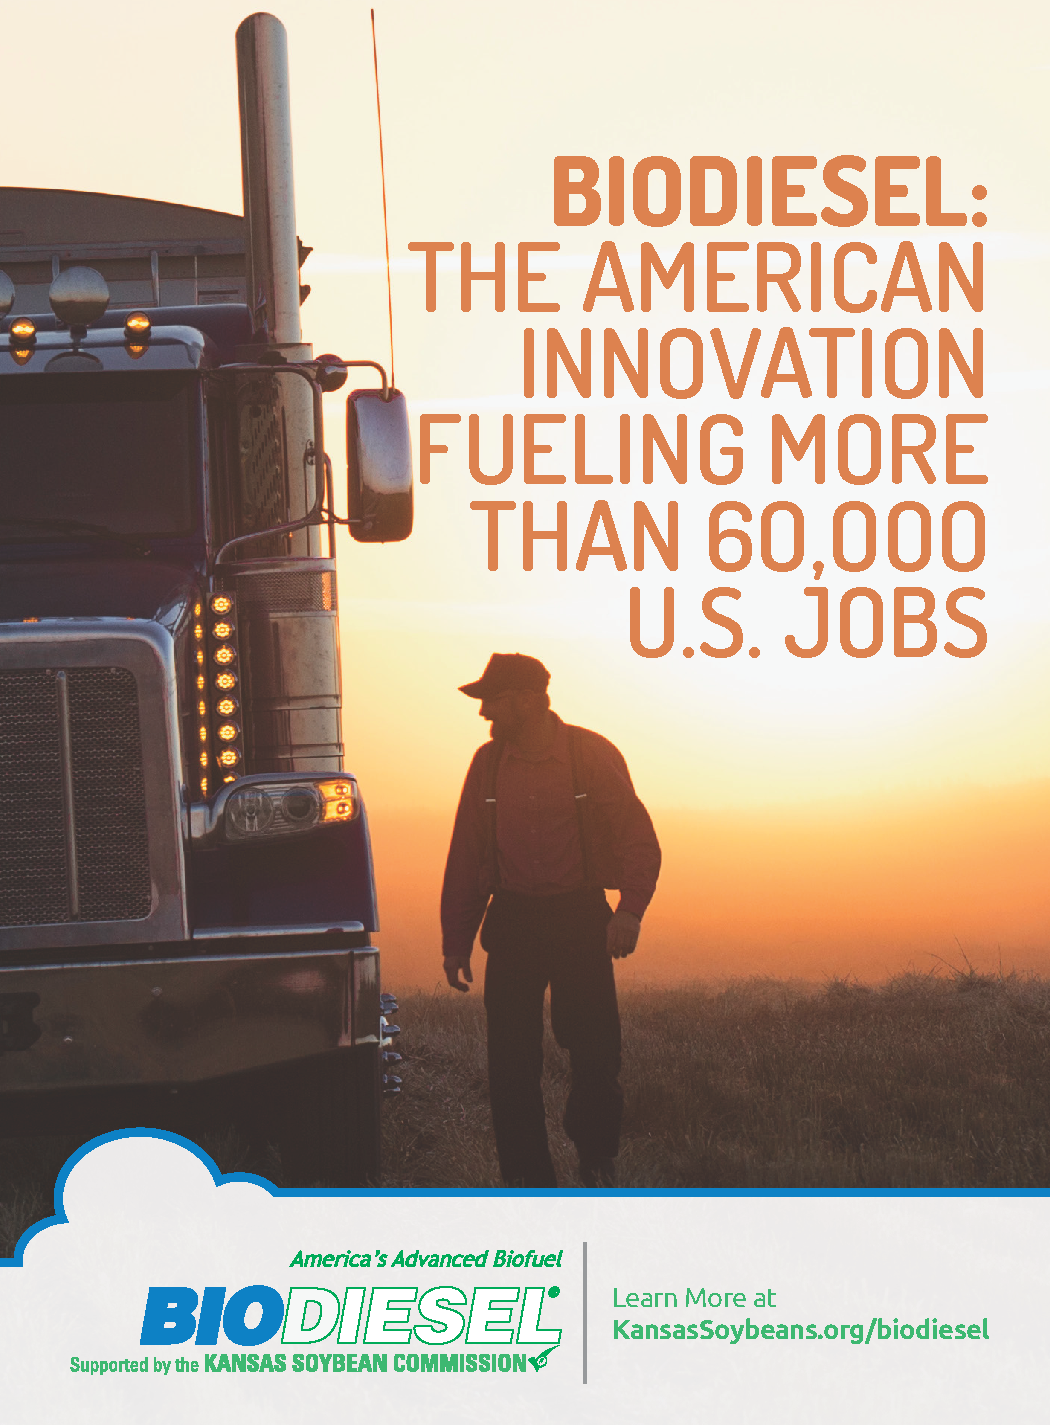 Biodiesel: The American Innovation Fueling More Than 60,000 U.S. Jobs